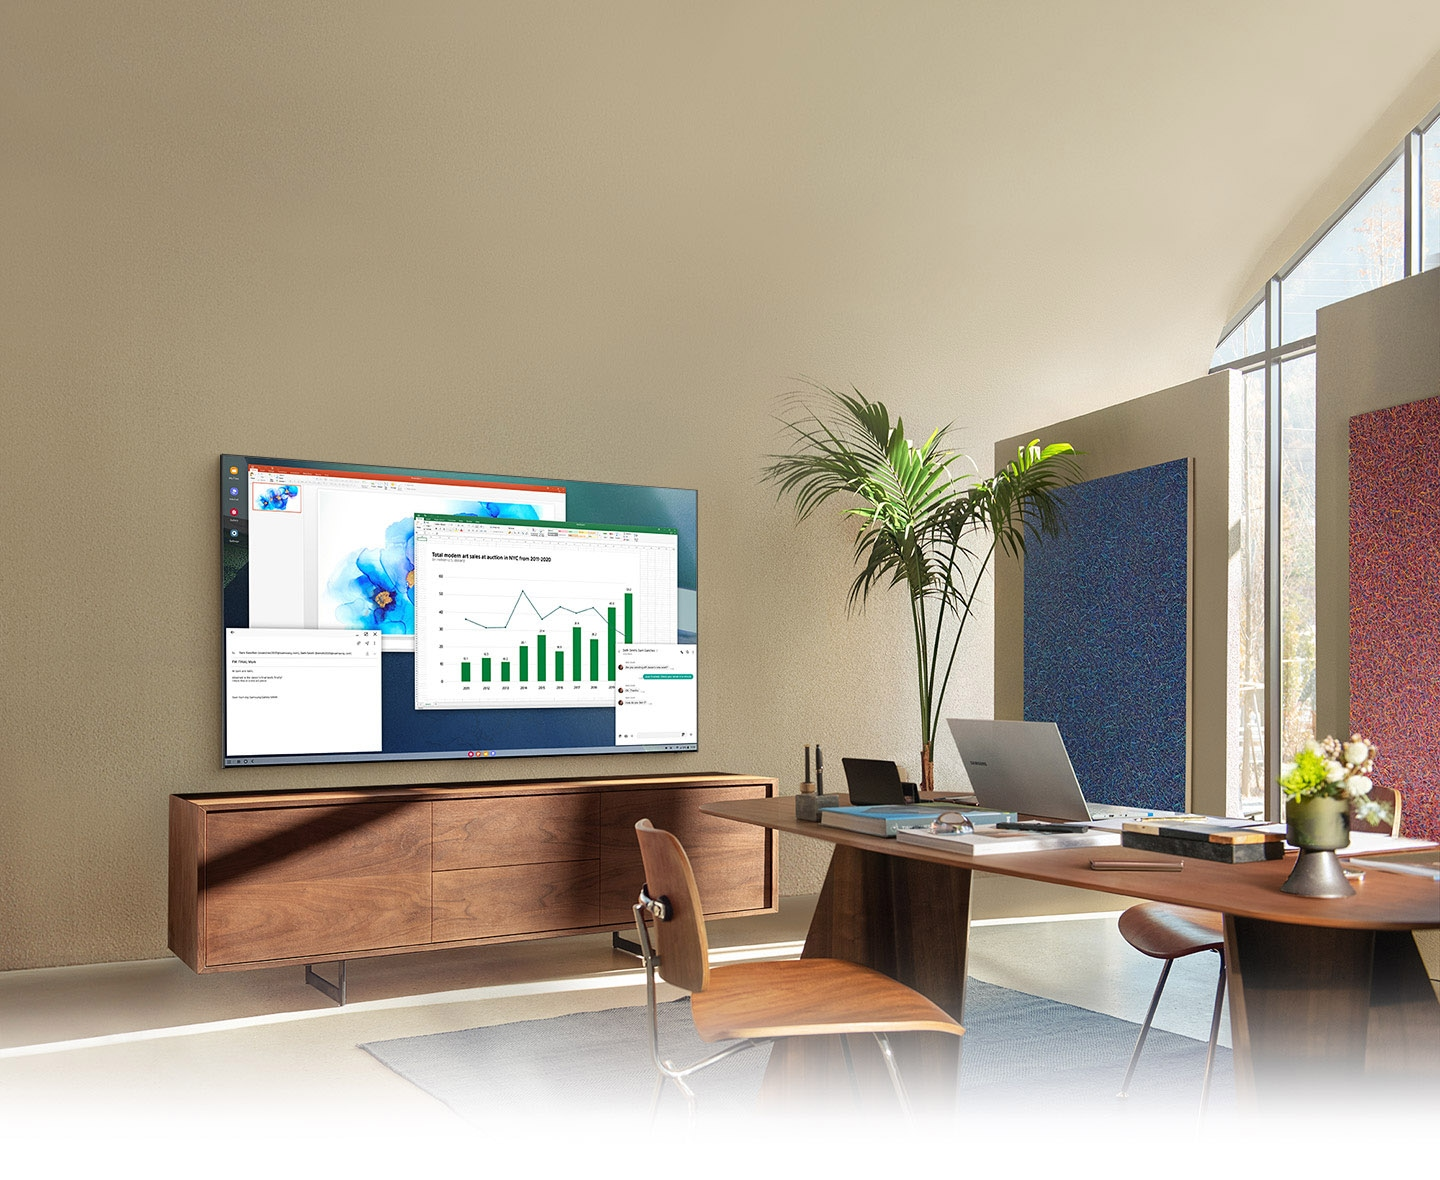 In a living room home office, QLED TV screen shows PC on TV feature which allows home TV to connect to office PC.